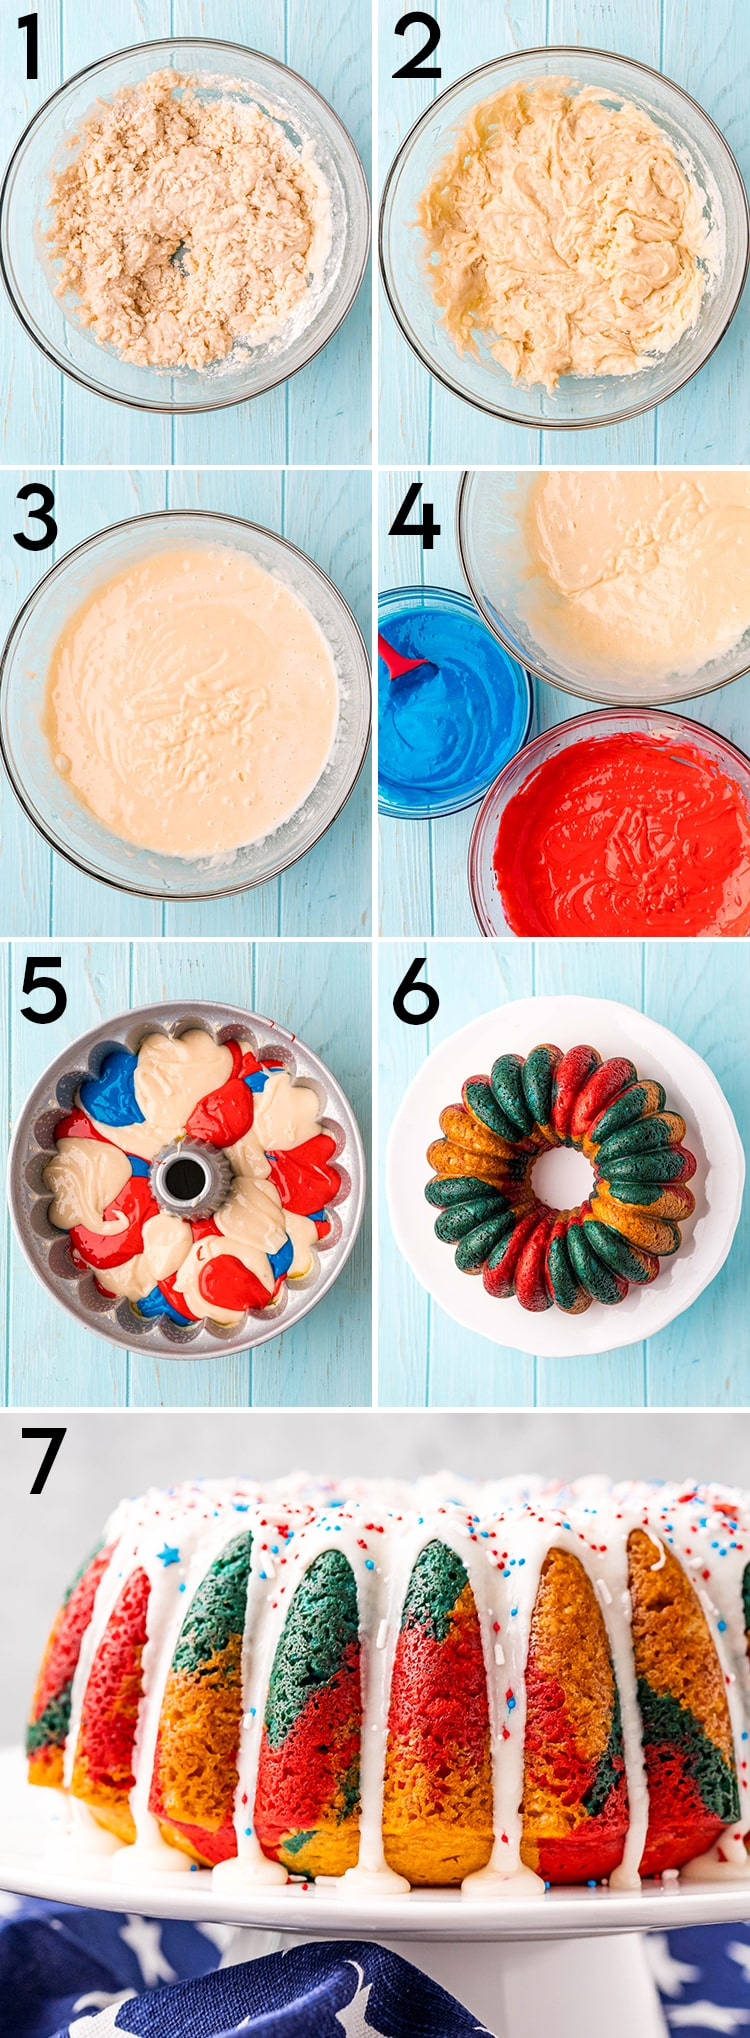 7 step by step photos showing how to make a patriotic bundt cake that starts with a cake mix, showing the cake batter mixed up in a bowl, then adding the colors, adding the spoonfuls to the pan, and baking it up.